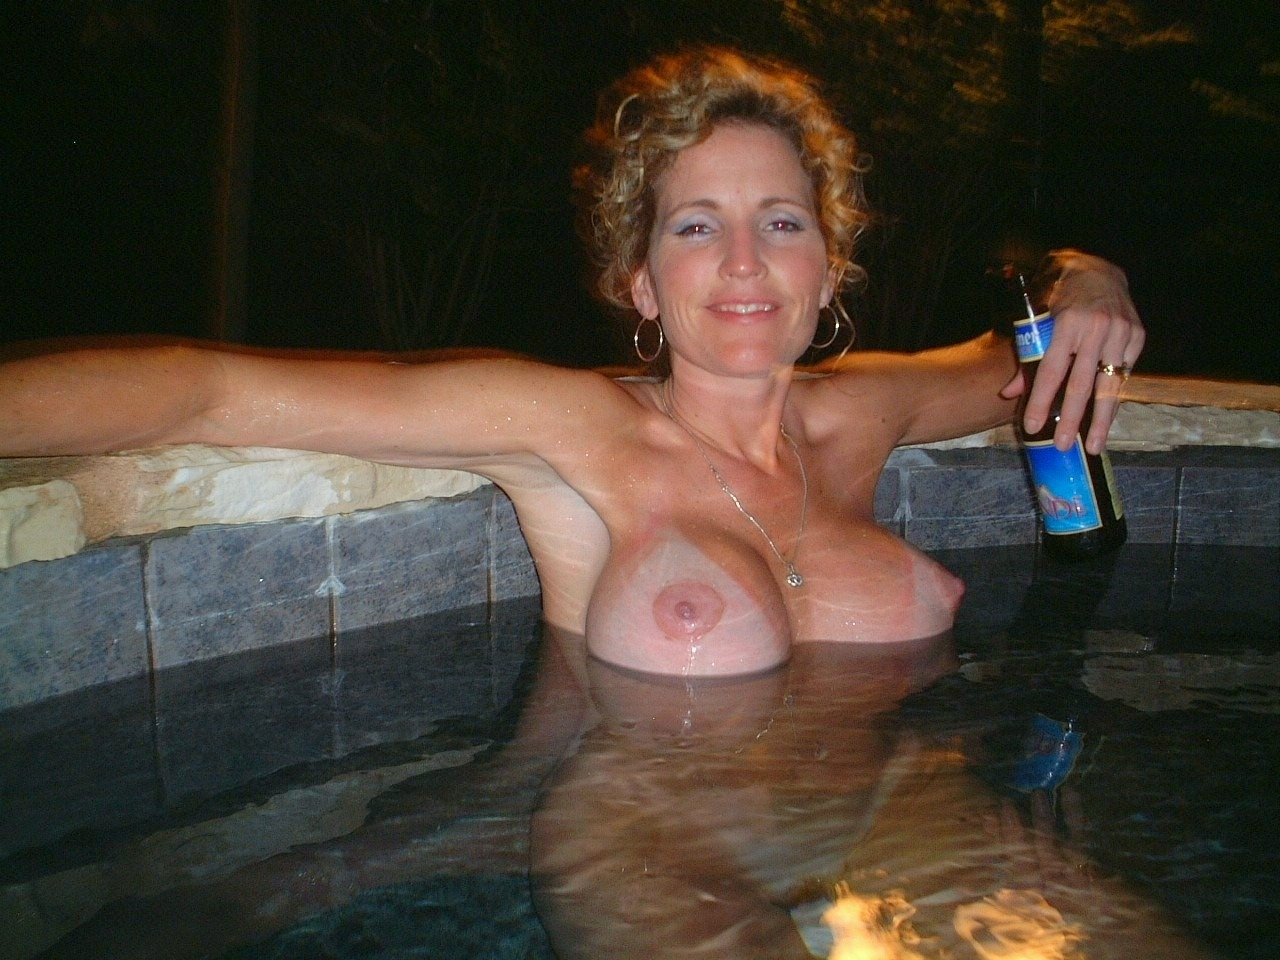 Hot Tub Amateur - Scrambler Footpath Cougars And Milf Men indubitable everything's priced